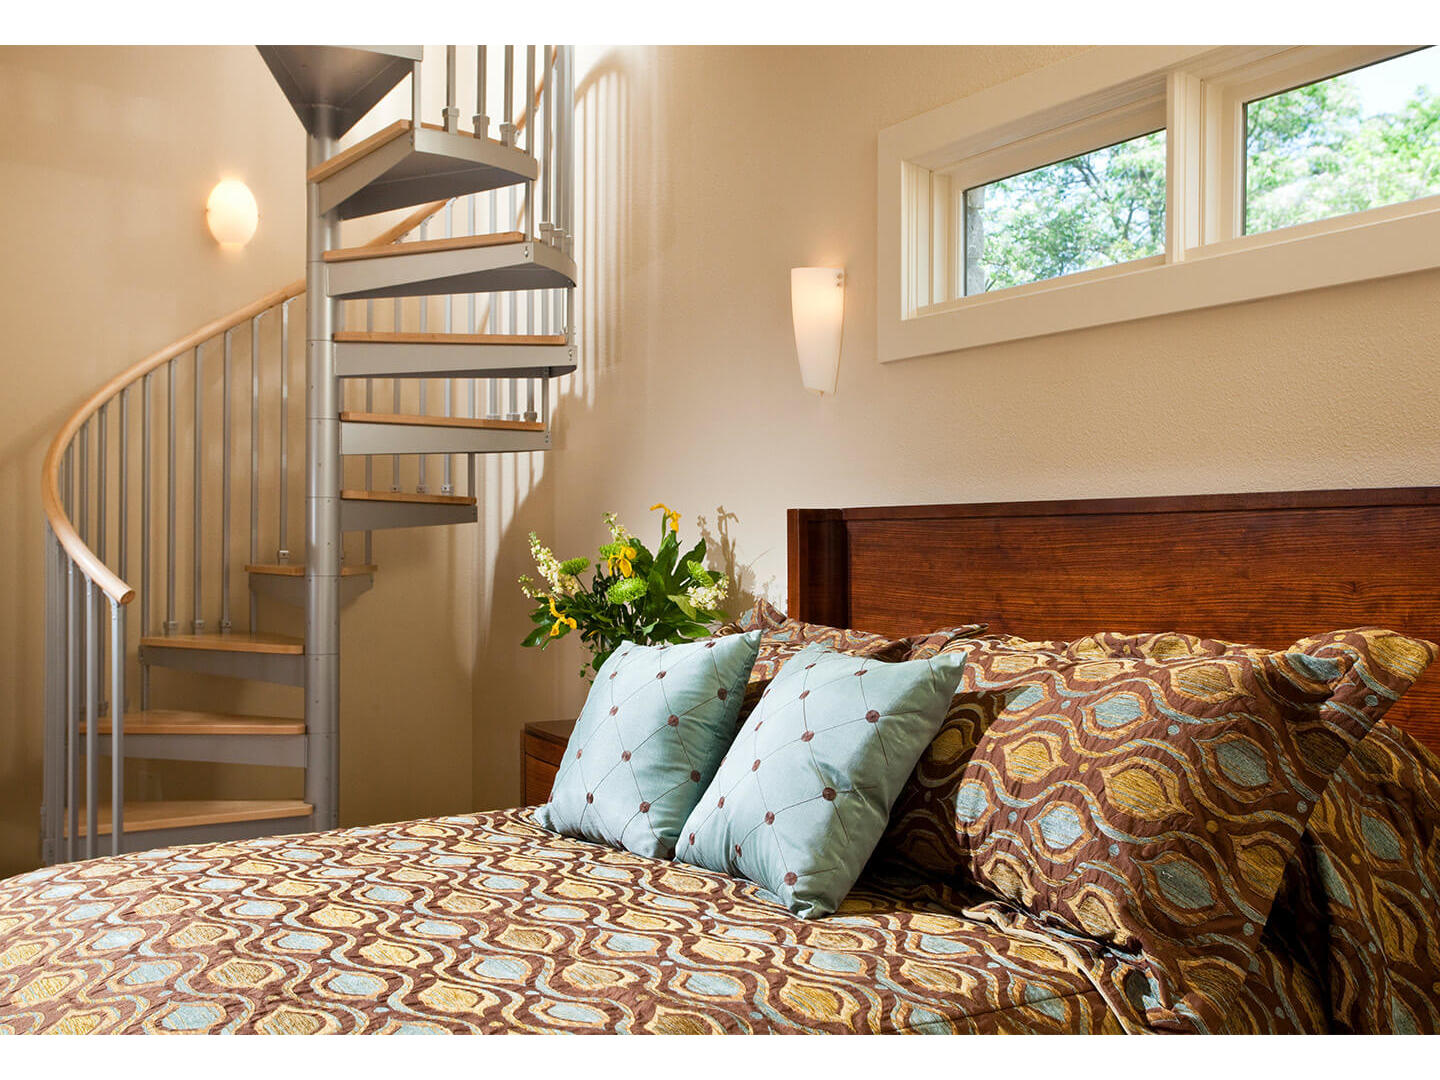 A bedroom with a bed and a chair in a room at Inn on Lake Granbury.